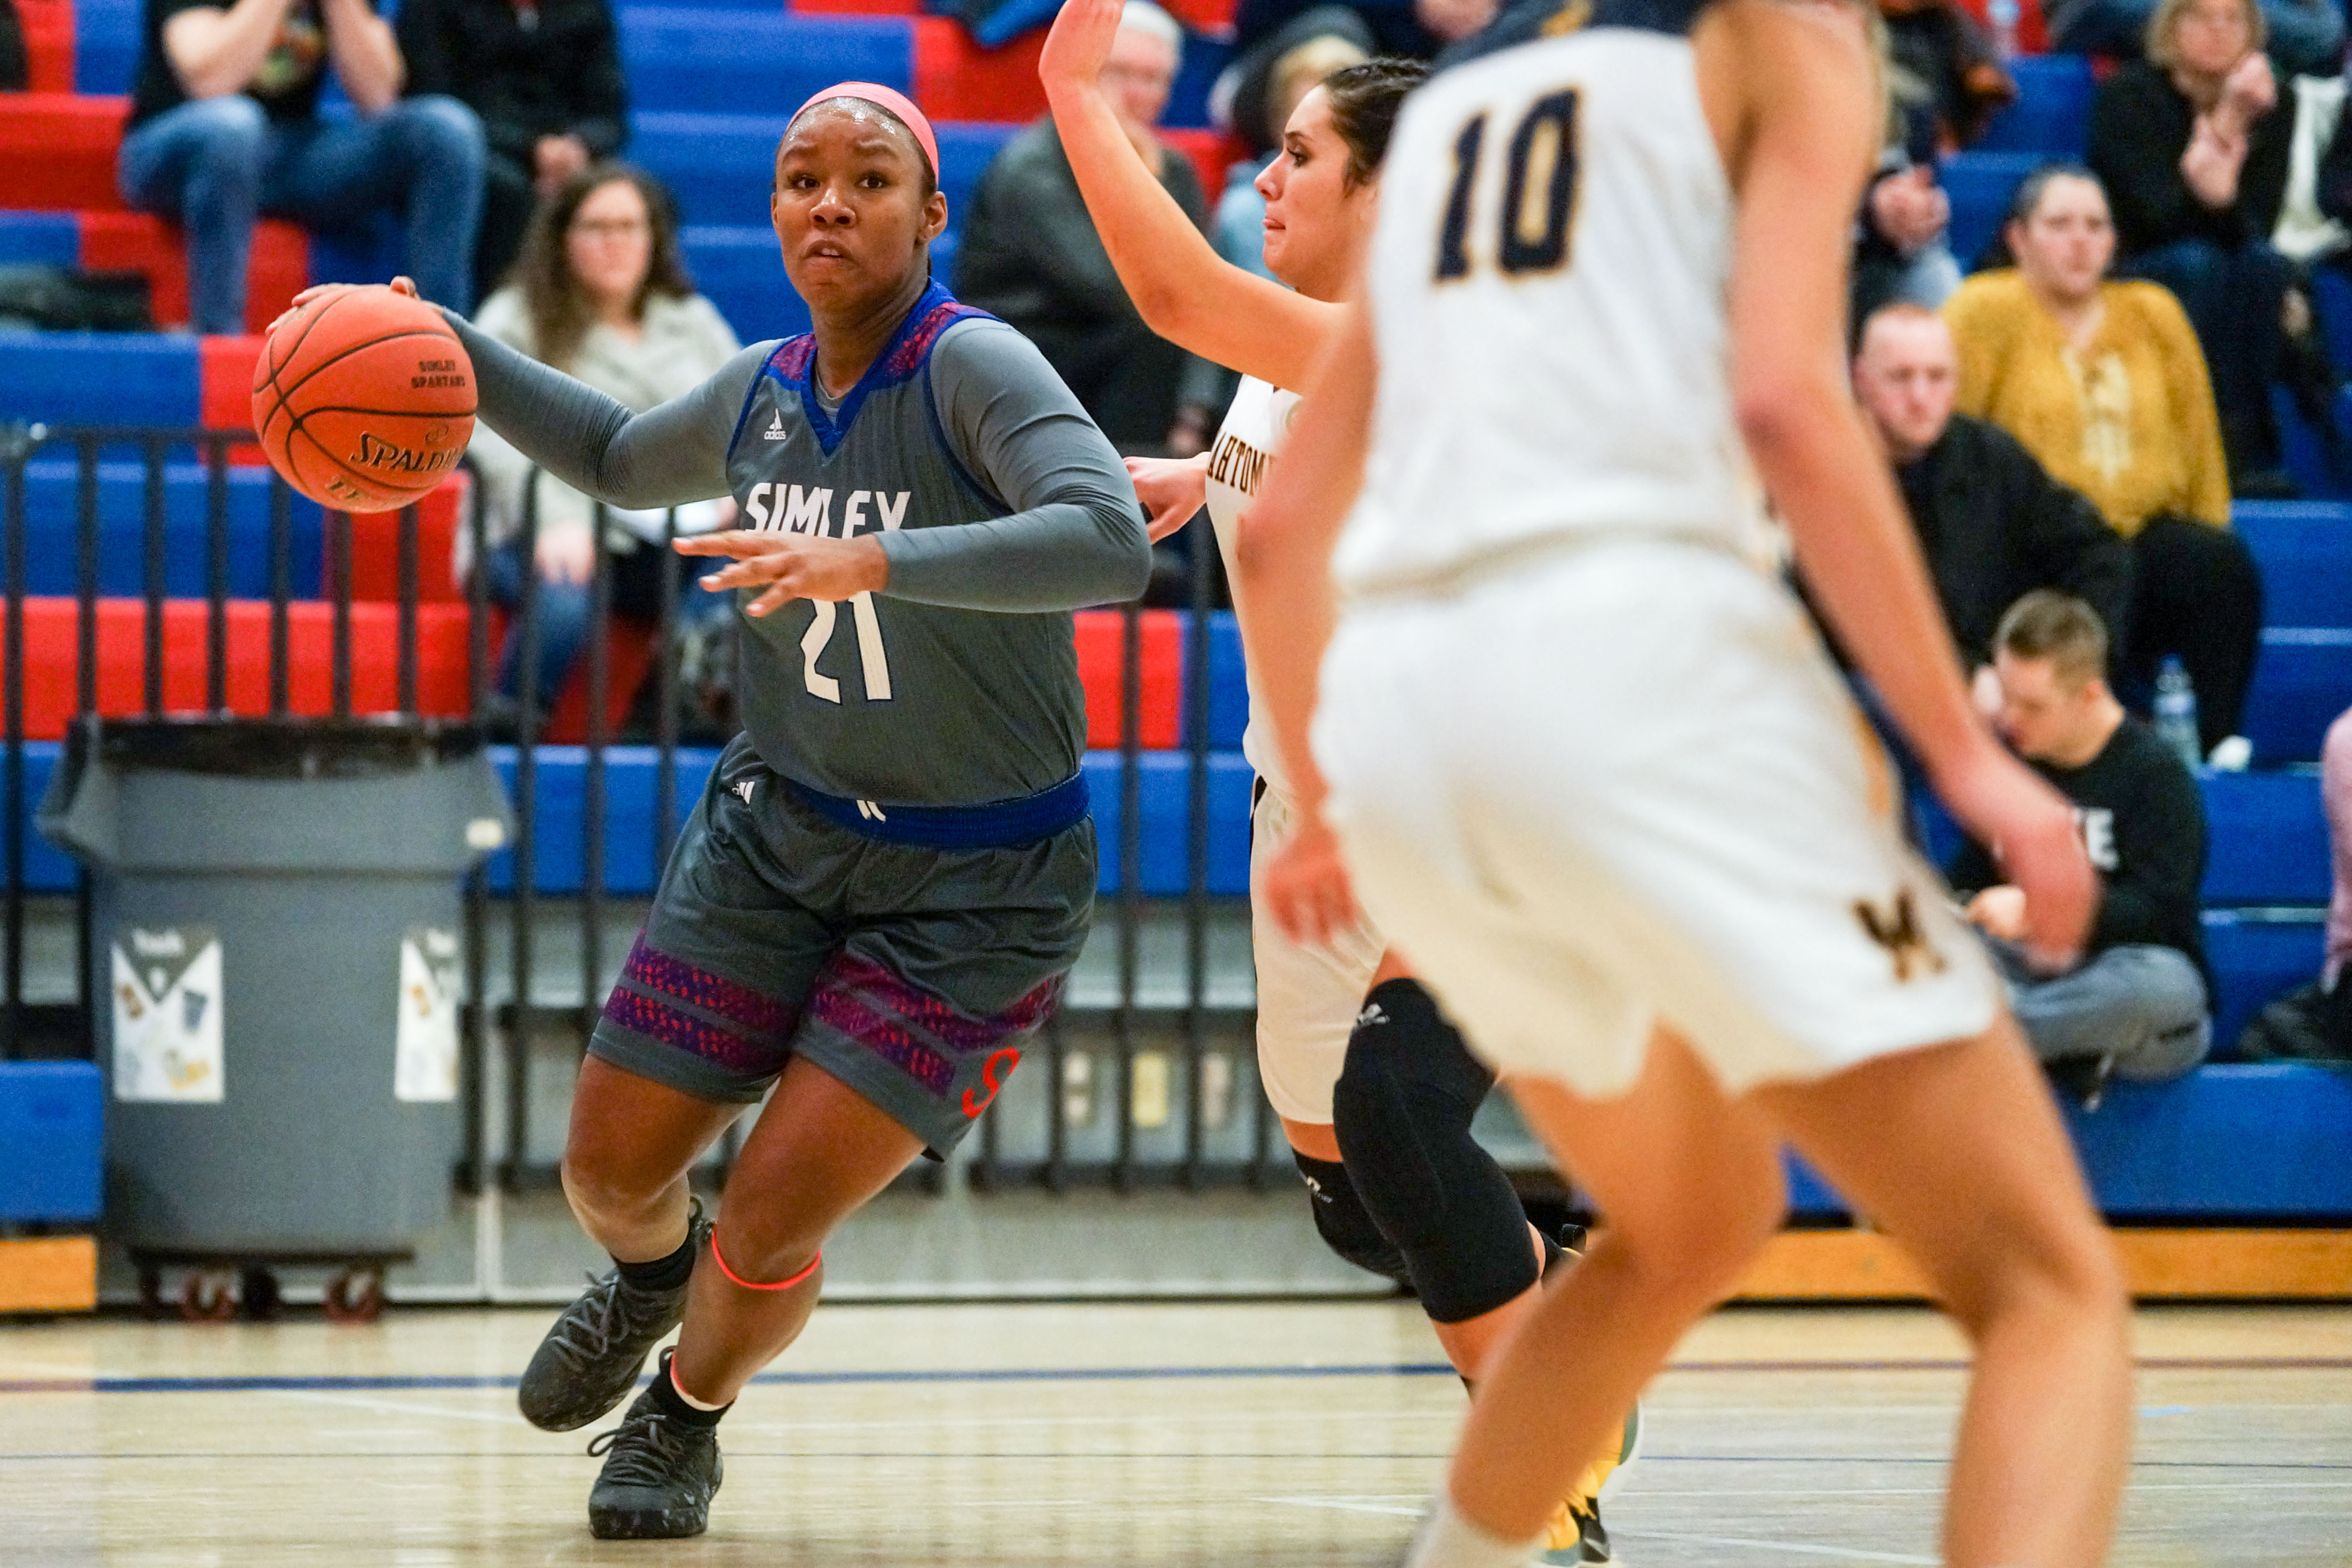 Simley senior Ysareia Chèvre (21) and her Spartan teammates were in control most of the night against visiting Mahtomedi Tuesday in an easy conference victory. Photo by Korey McDermott, SportsEngine